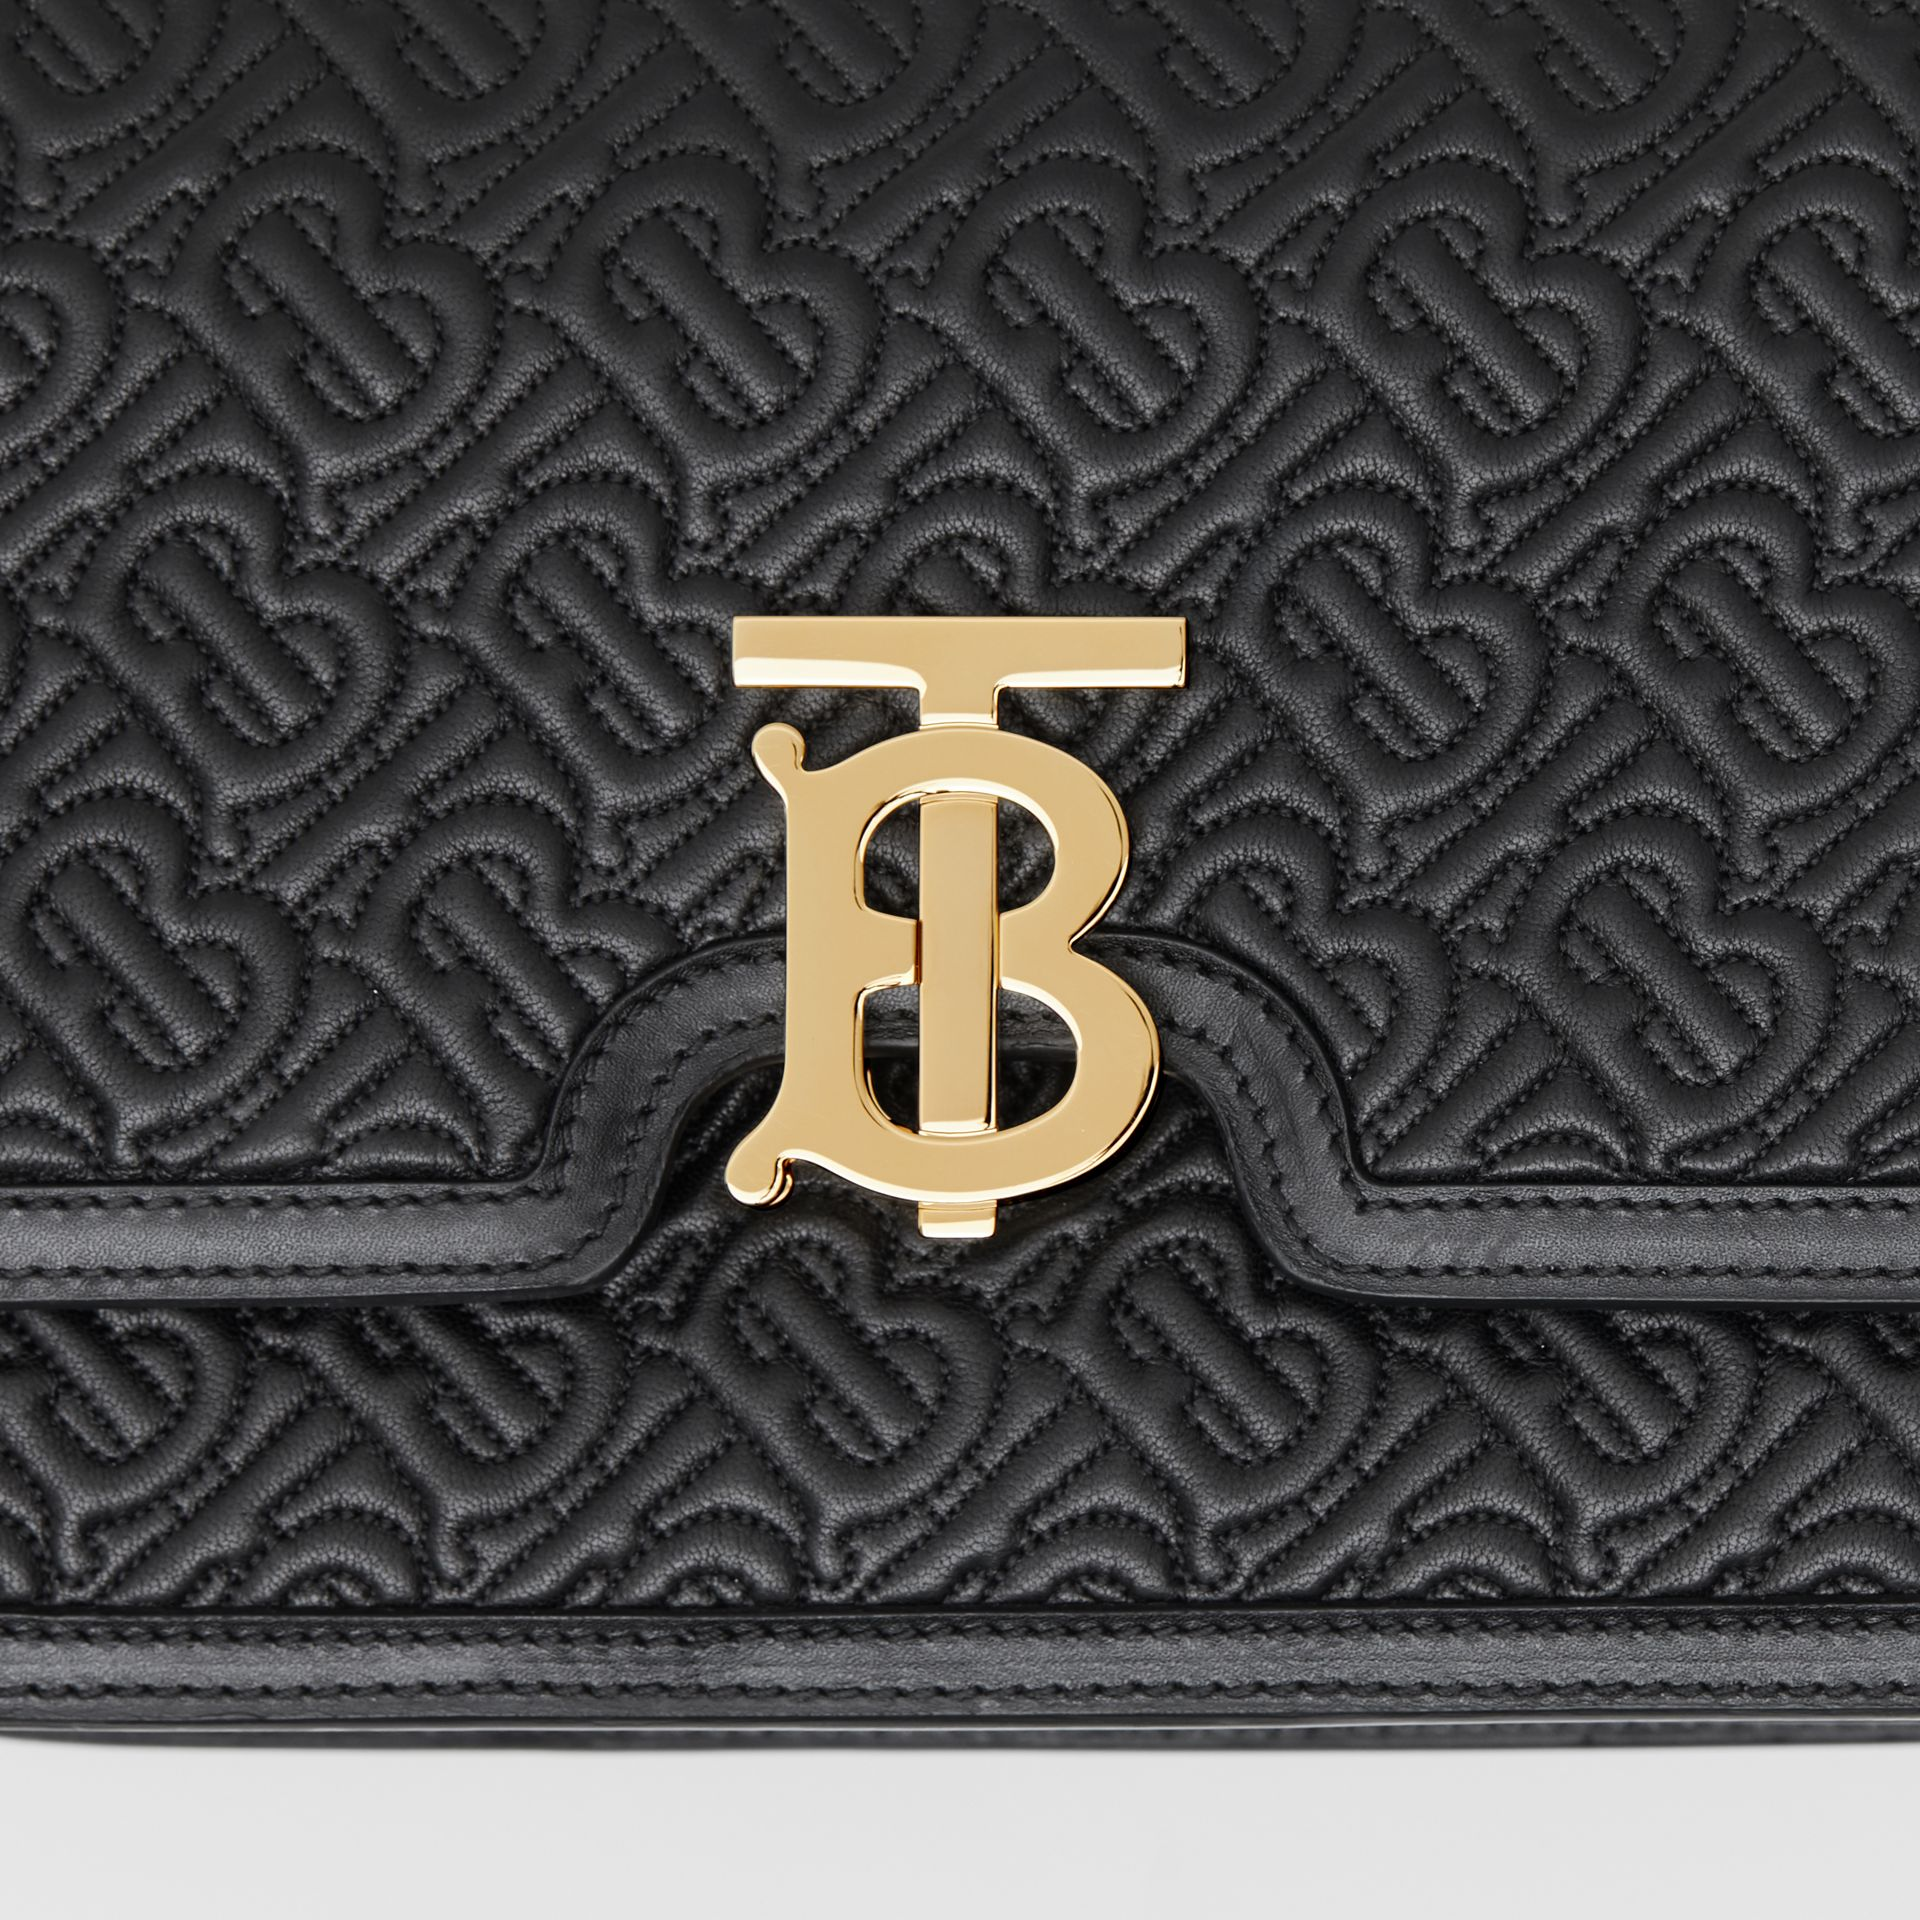 Medium Quilted Monogram Lambskin TB Bag in Black - Women | Burberry - gallery image 1